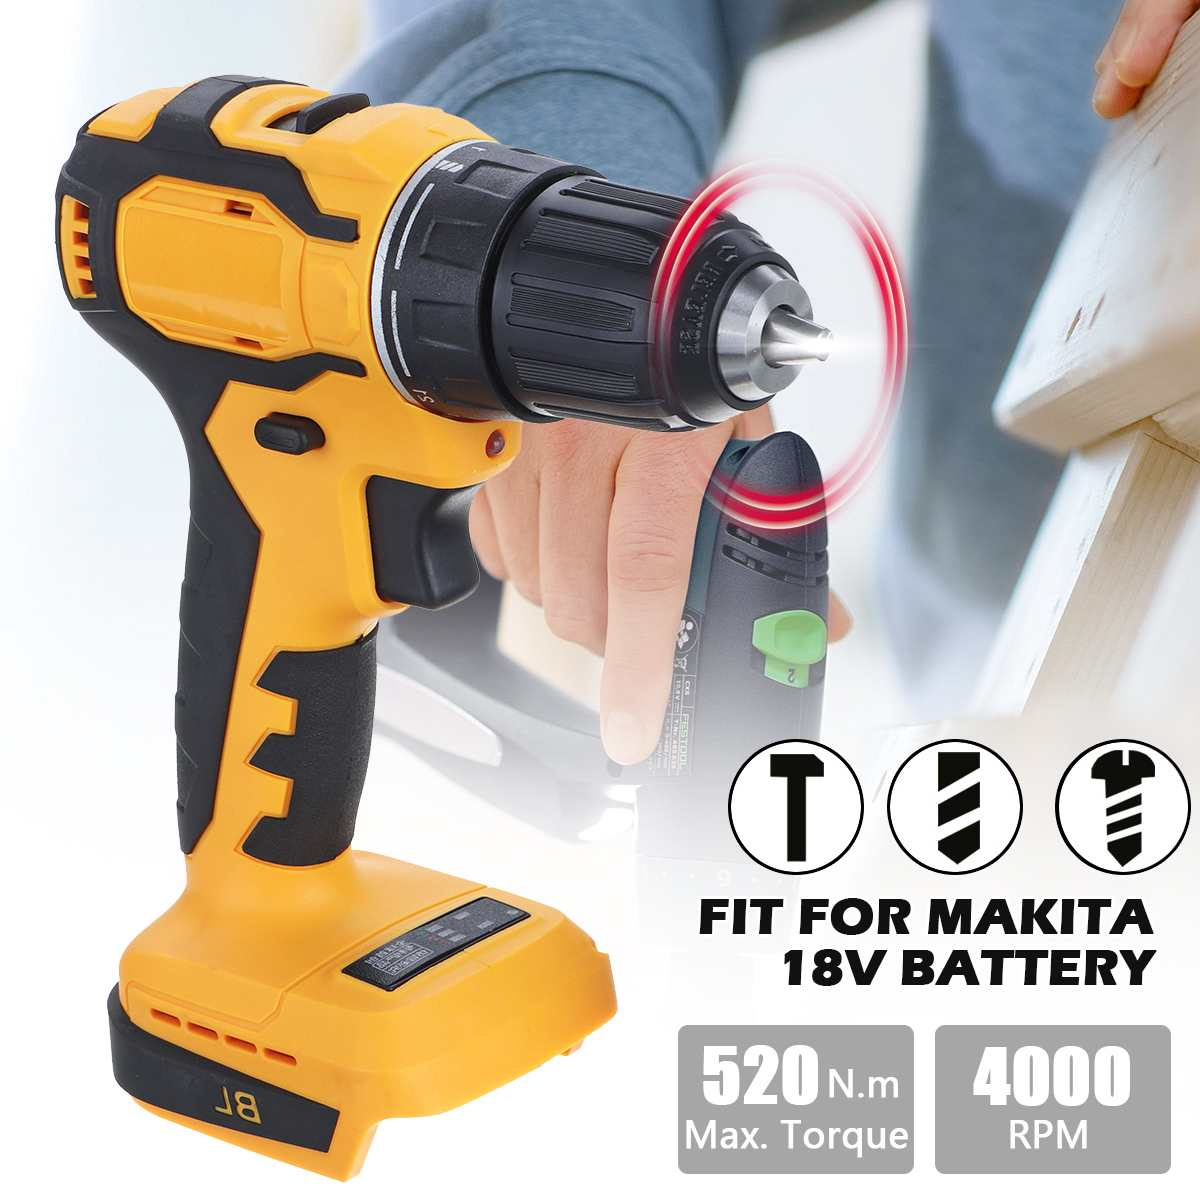 (no battery) Professional Cordless Drill Power Tools 520Nm Cordless Screwdriver Drills Fit For Makita 18V Battery